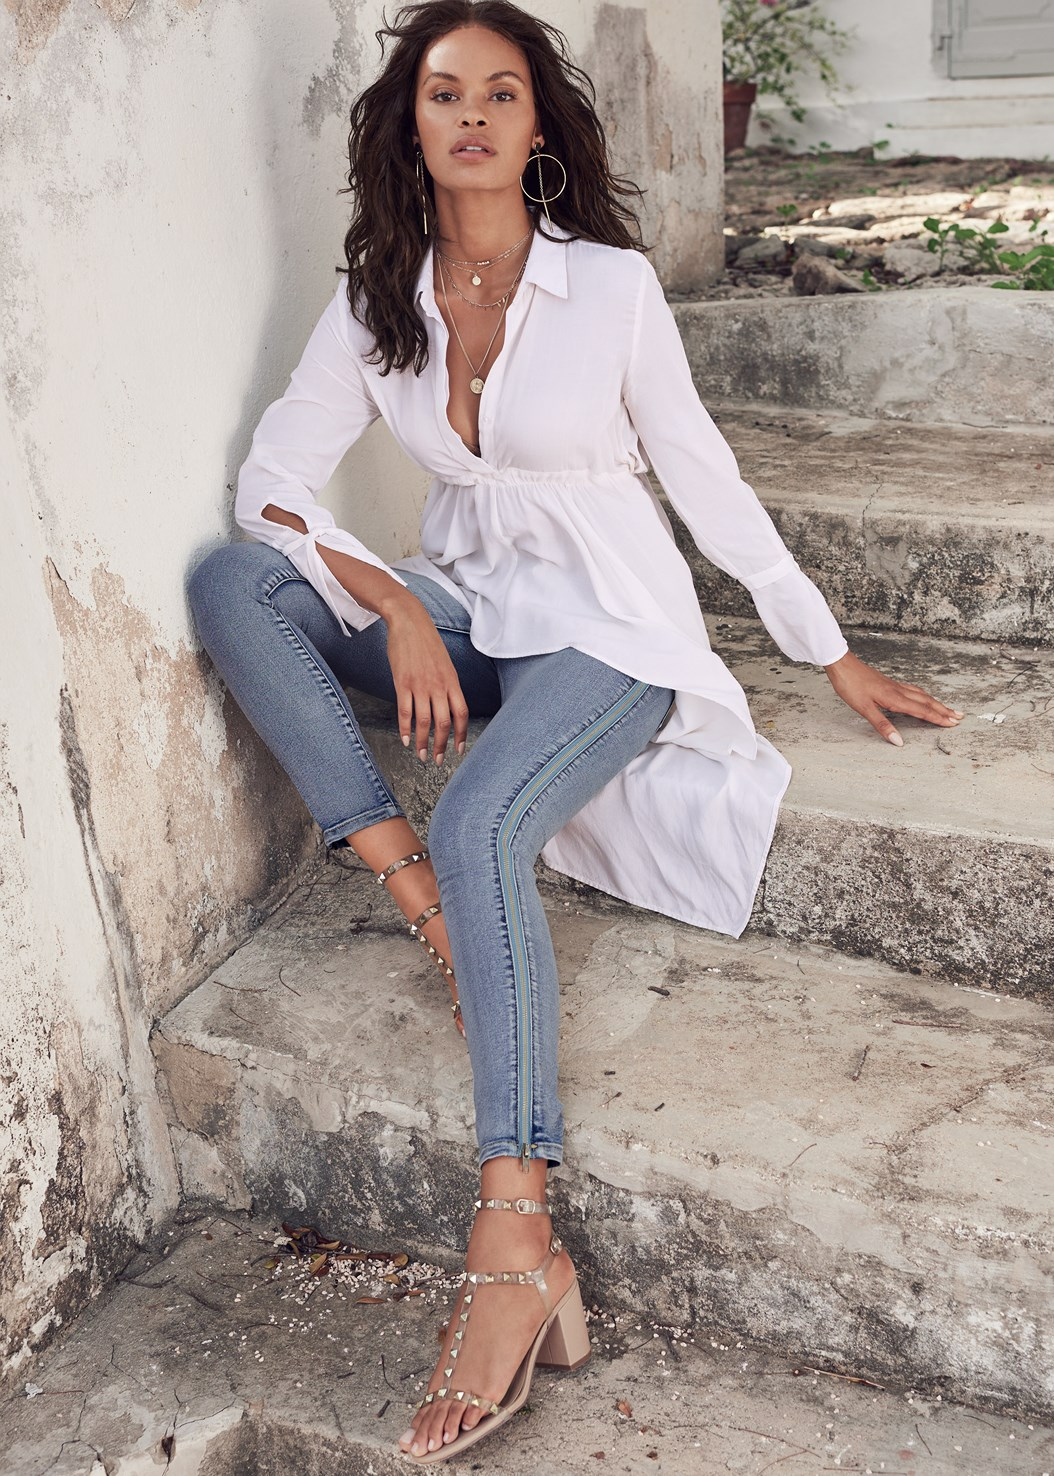 High Low Blouse,Side Zipper Jeans,Transparent Studded Heels,Lucite Detail Print Heels,Circular Straw Bag